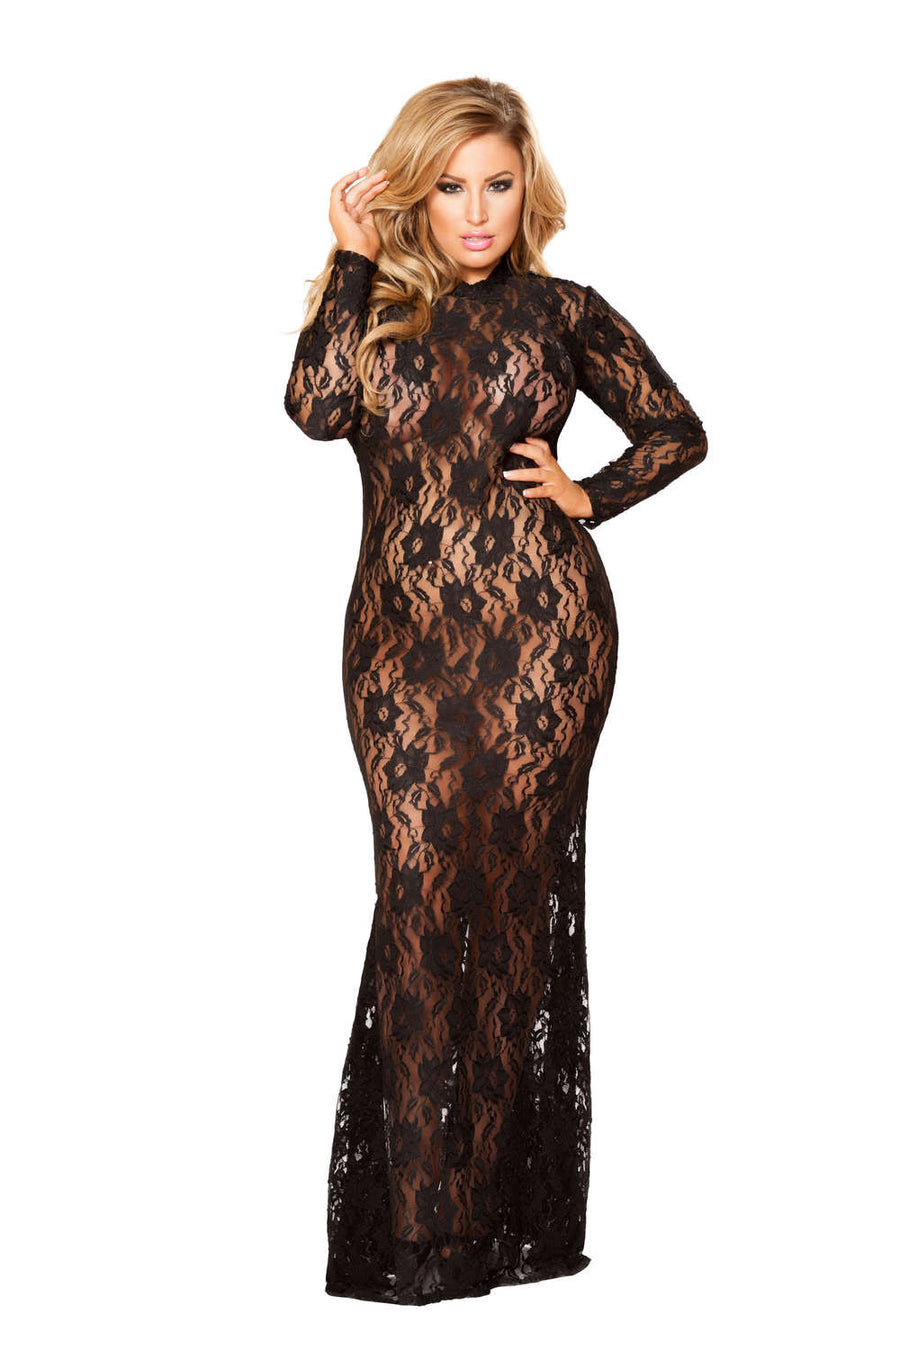 b9670f0227b Roma Costume Female Plus Size 1Pc Lace Dress With Open Back And Hook ...